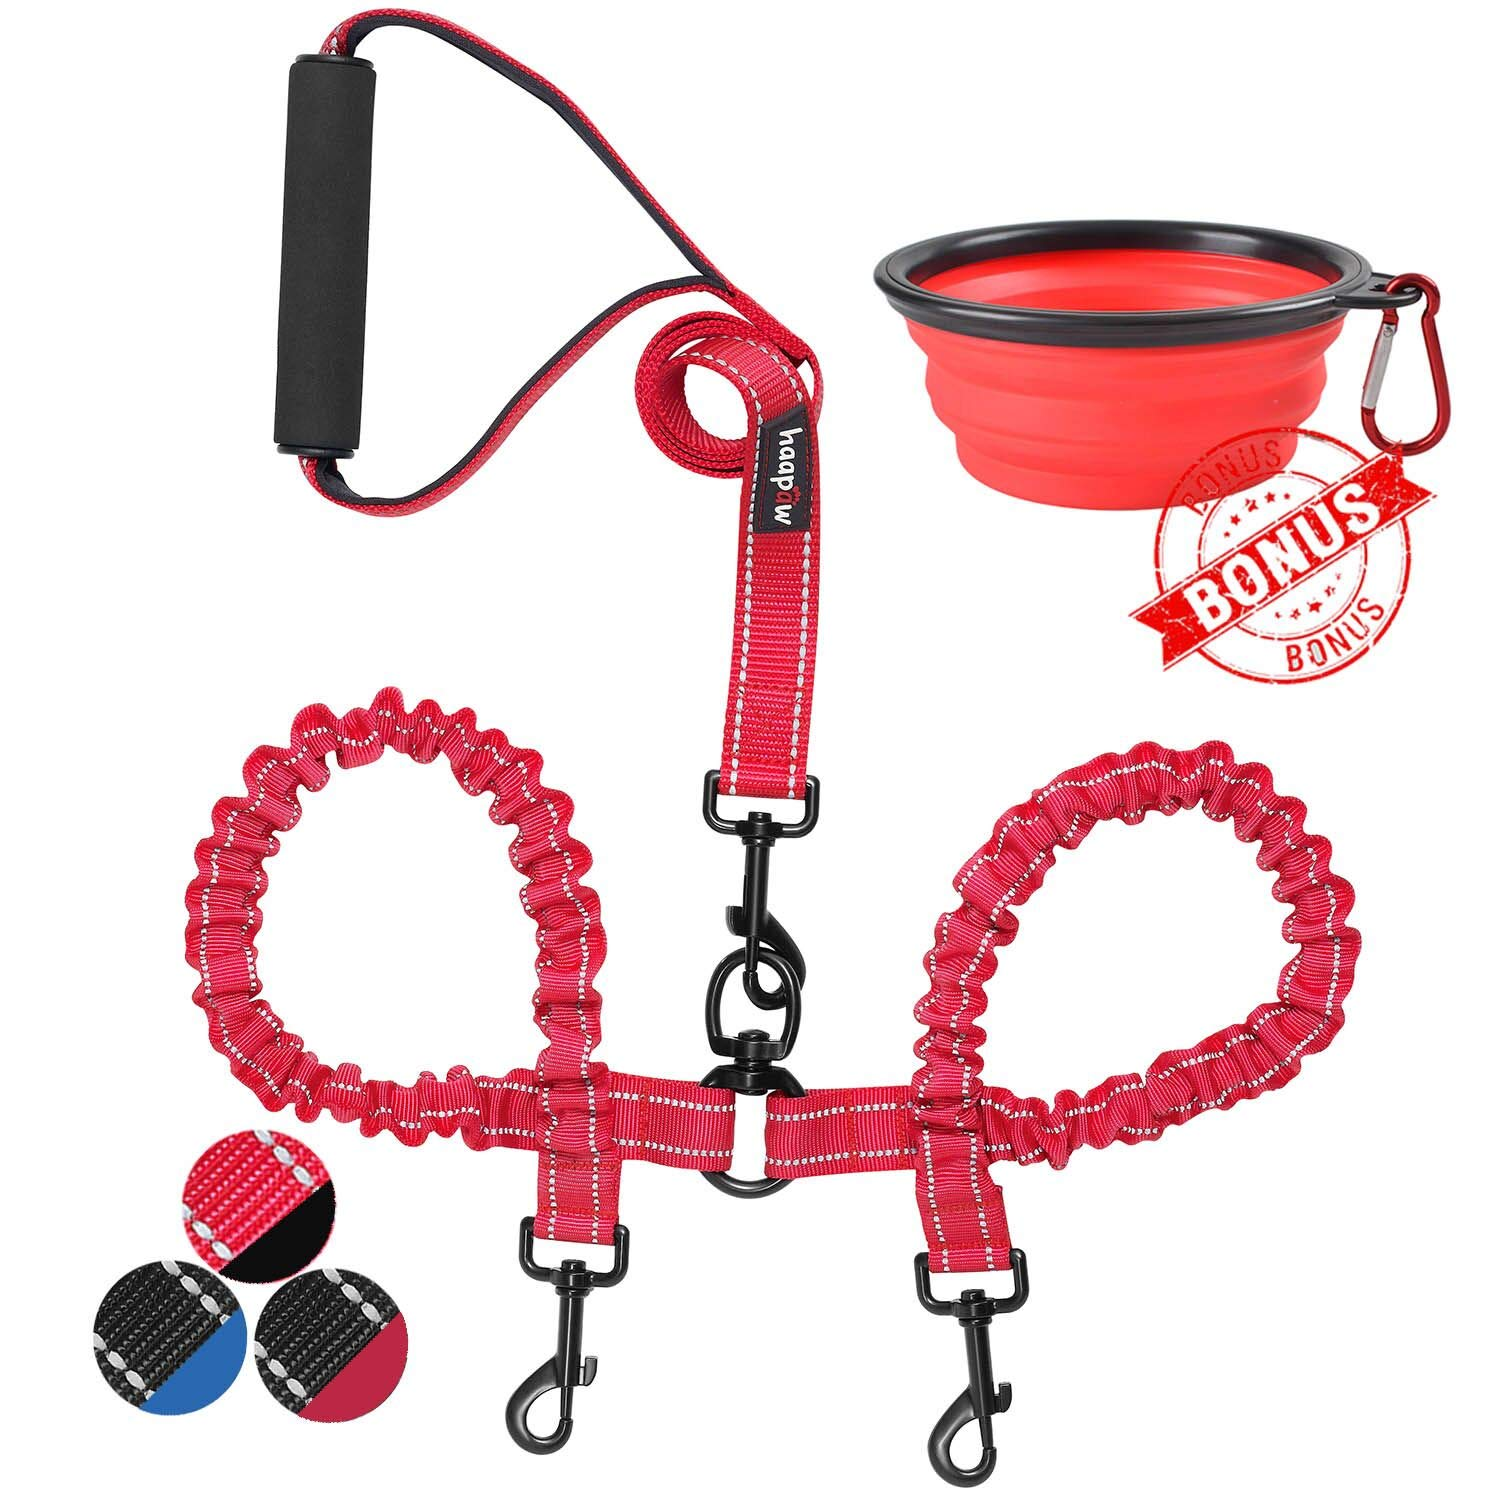 Red Black haapaw Two Dog Leash Coupler 2 Dog Leash Tangle Free, Stretchable from 20 to 35 Inch Comfortable Handle Dual Dog Leash for 2 Dogs with a Free Collapsible Dog Bowl (red Black)